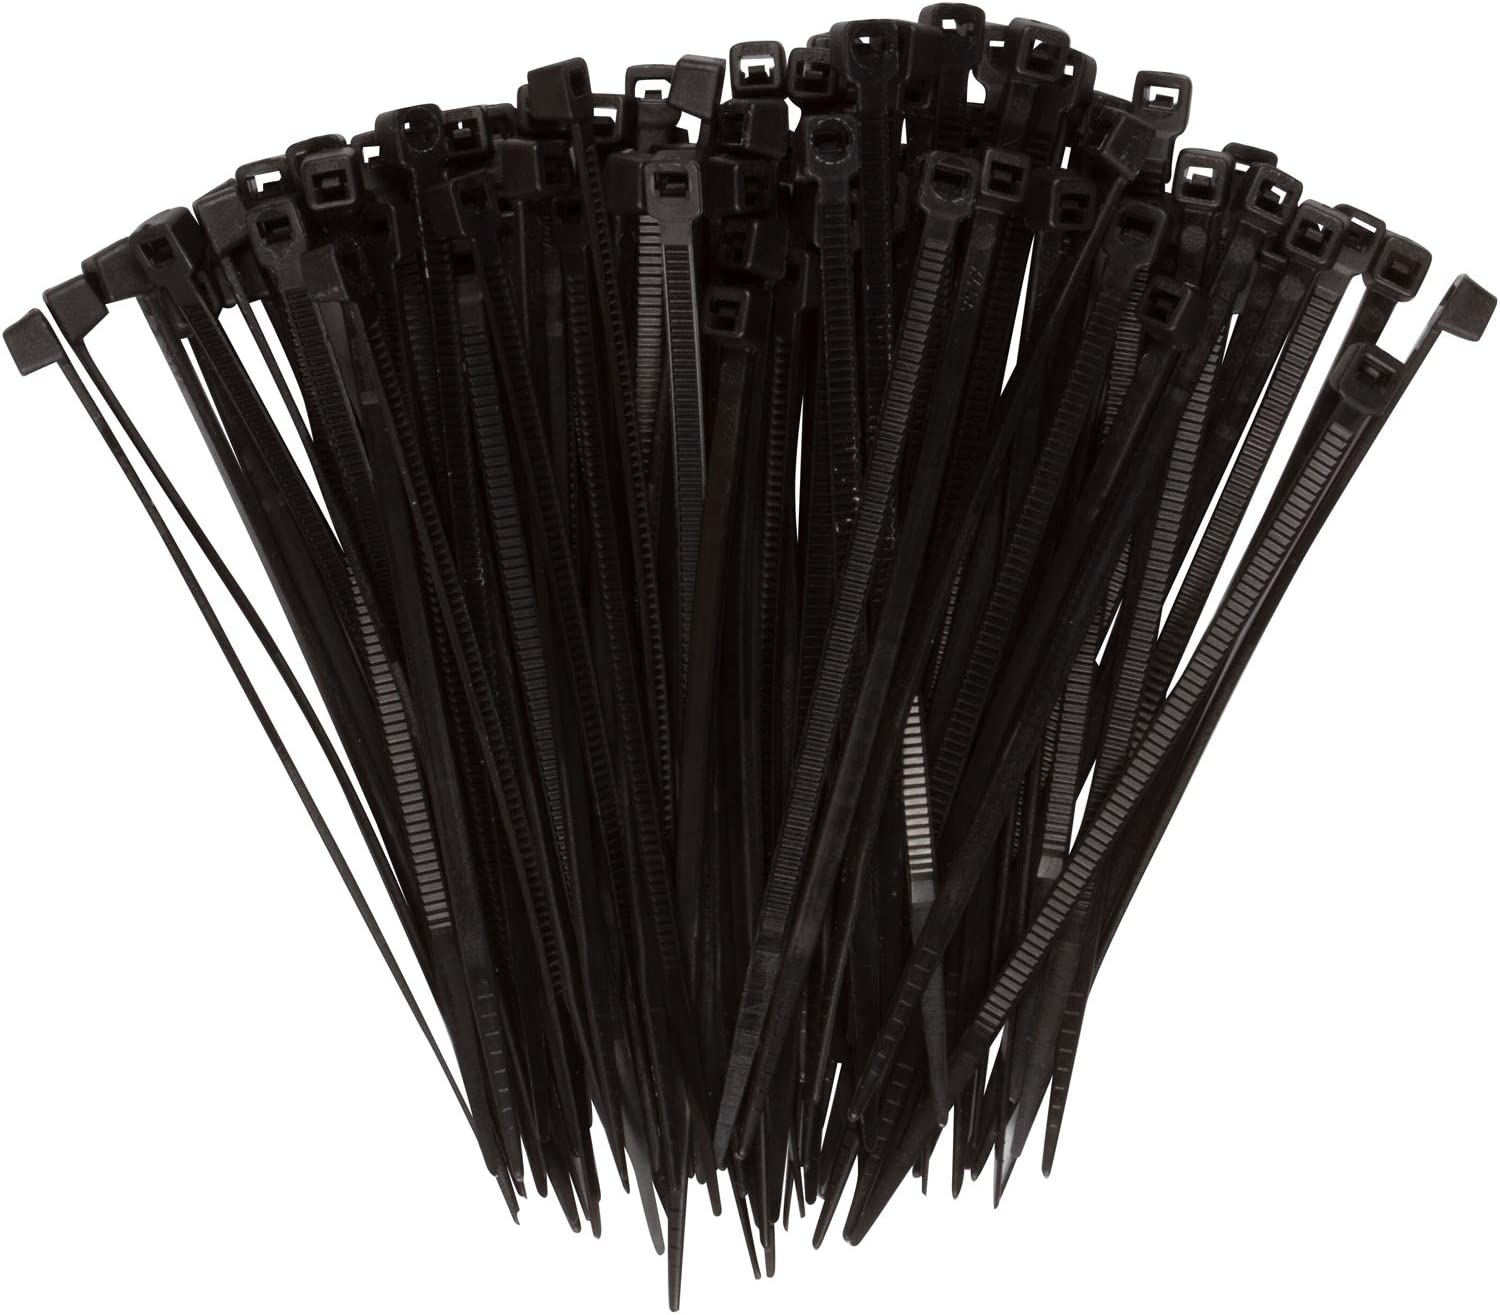 UR Recognized 18-Pound Tensile Strength Morris Products Nylon Cable Zip Ties Cable Organization Applications Heavy Duty 4 Inch Length Pack of 1000 UL Approved